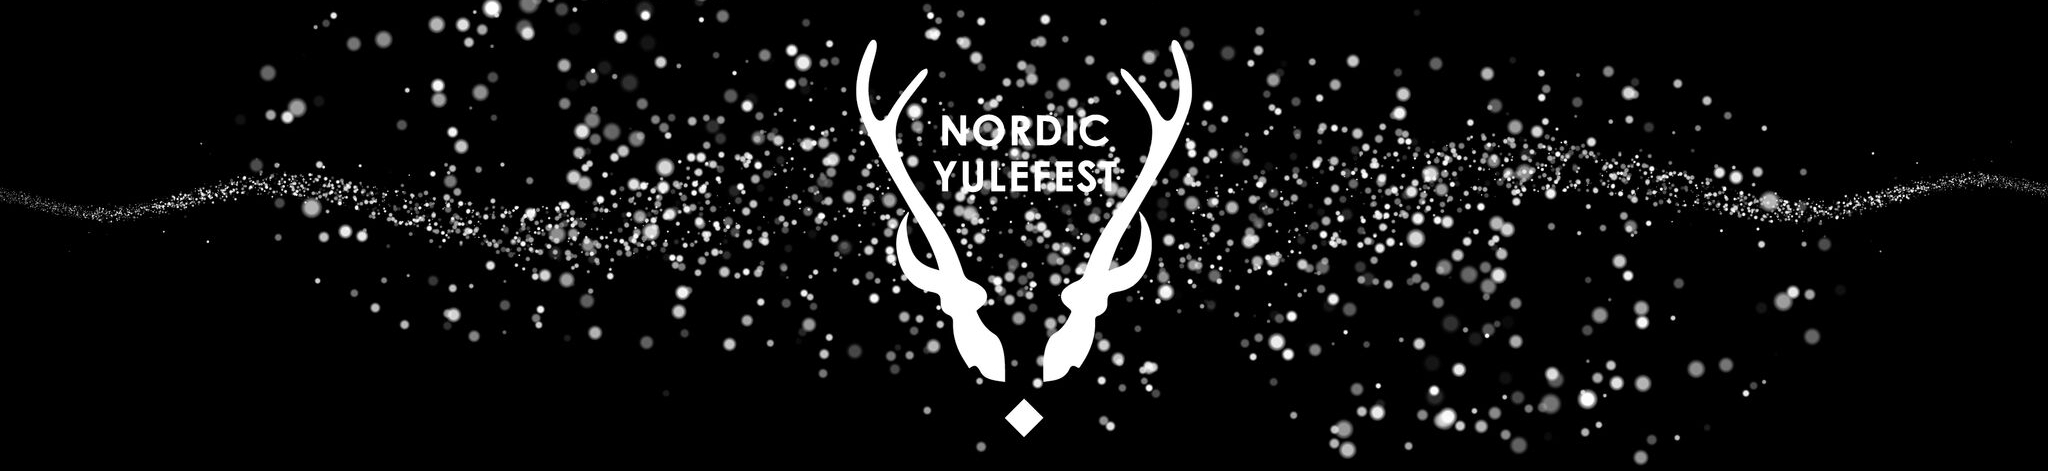 Meredith Collective Nordic Yulefest black snowstorm banner